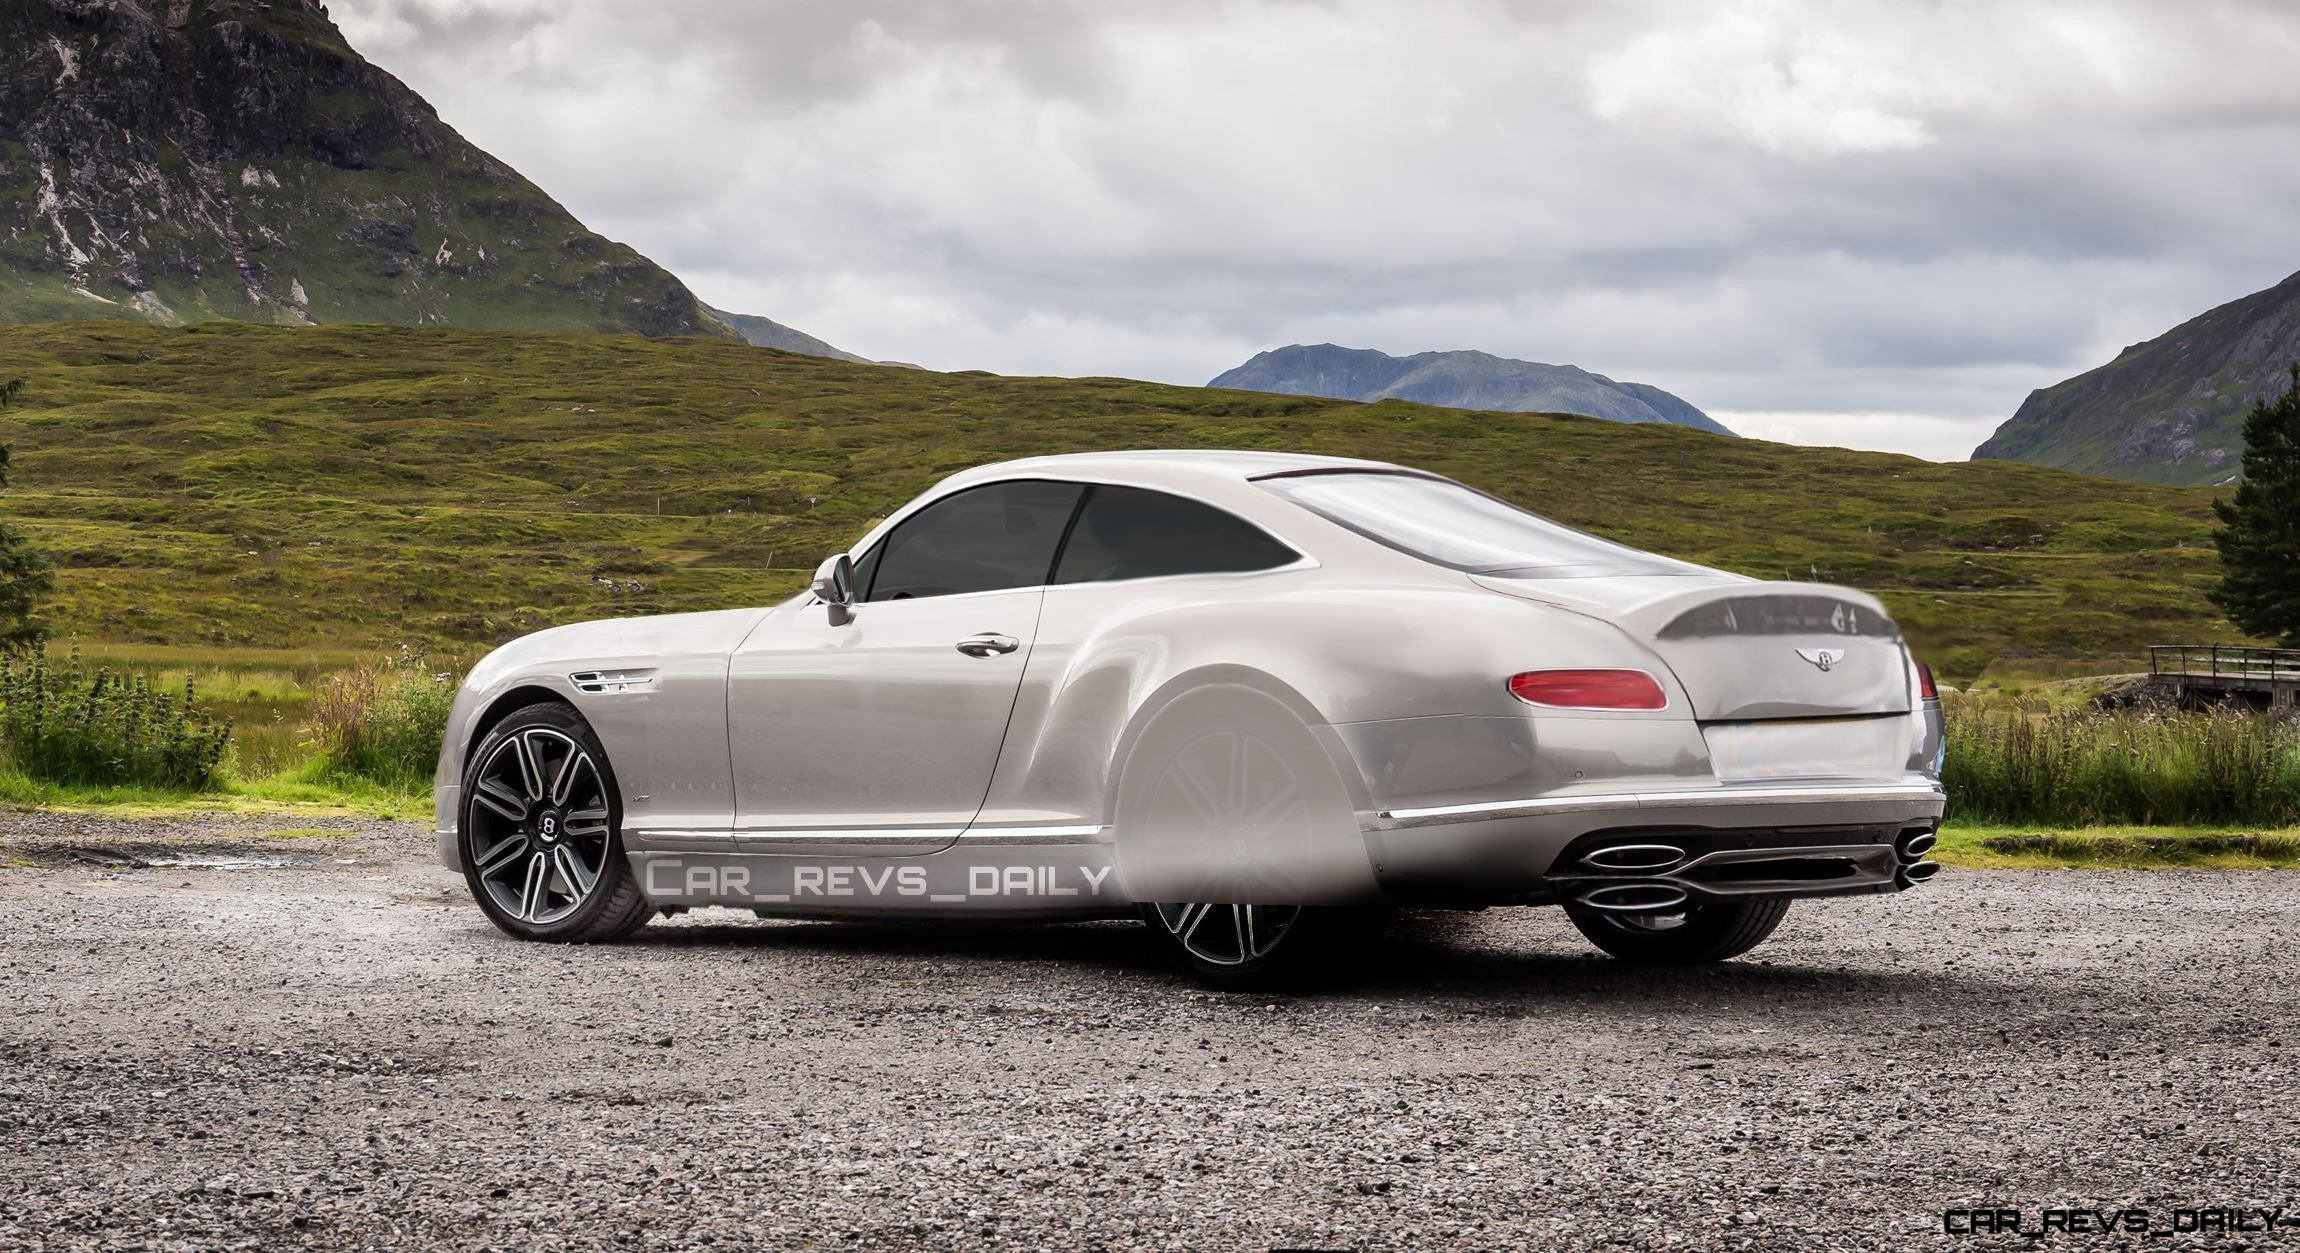 2017 Bentley Continental R-Type - Renderings 6